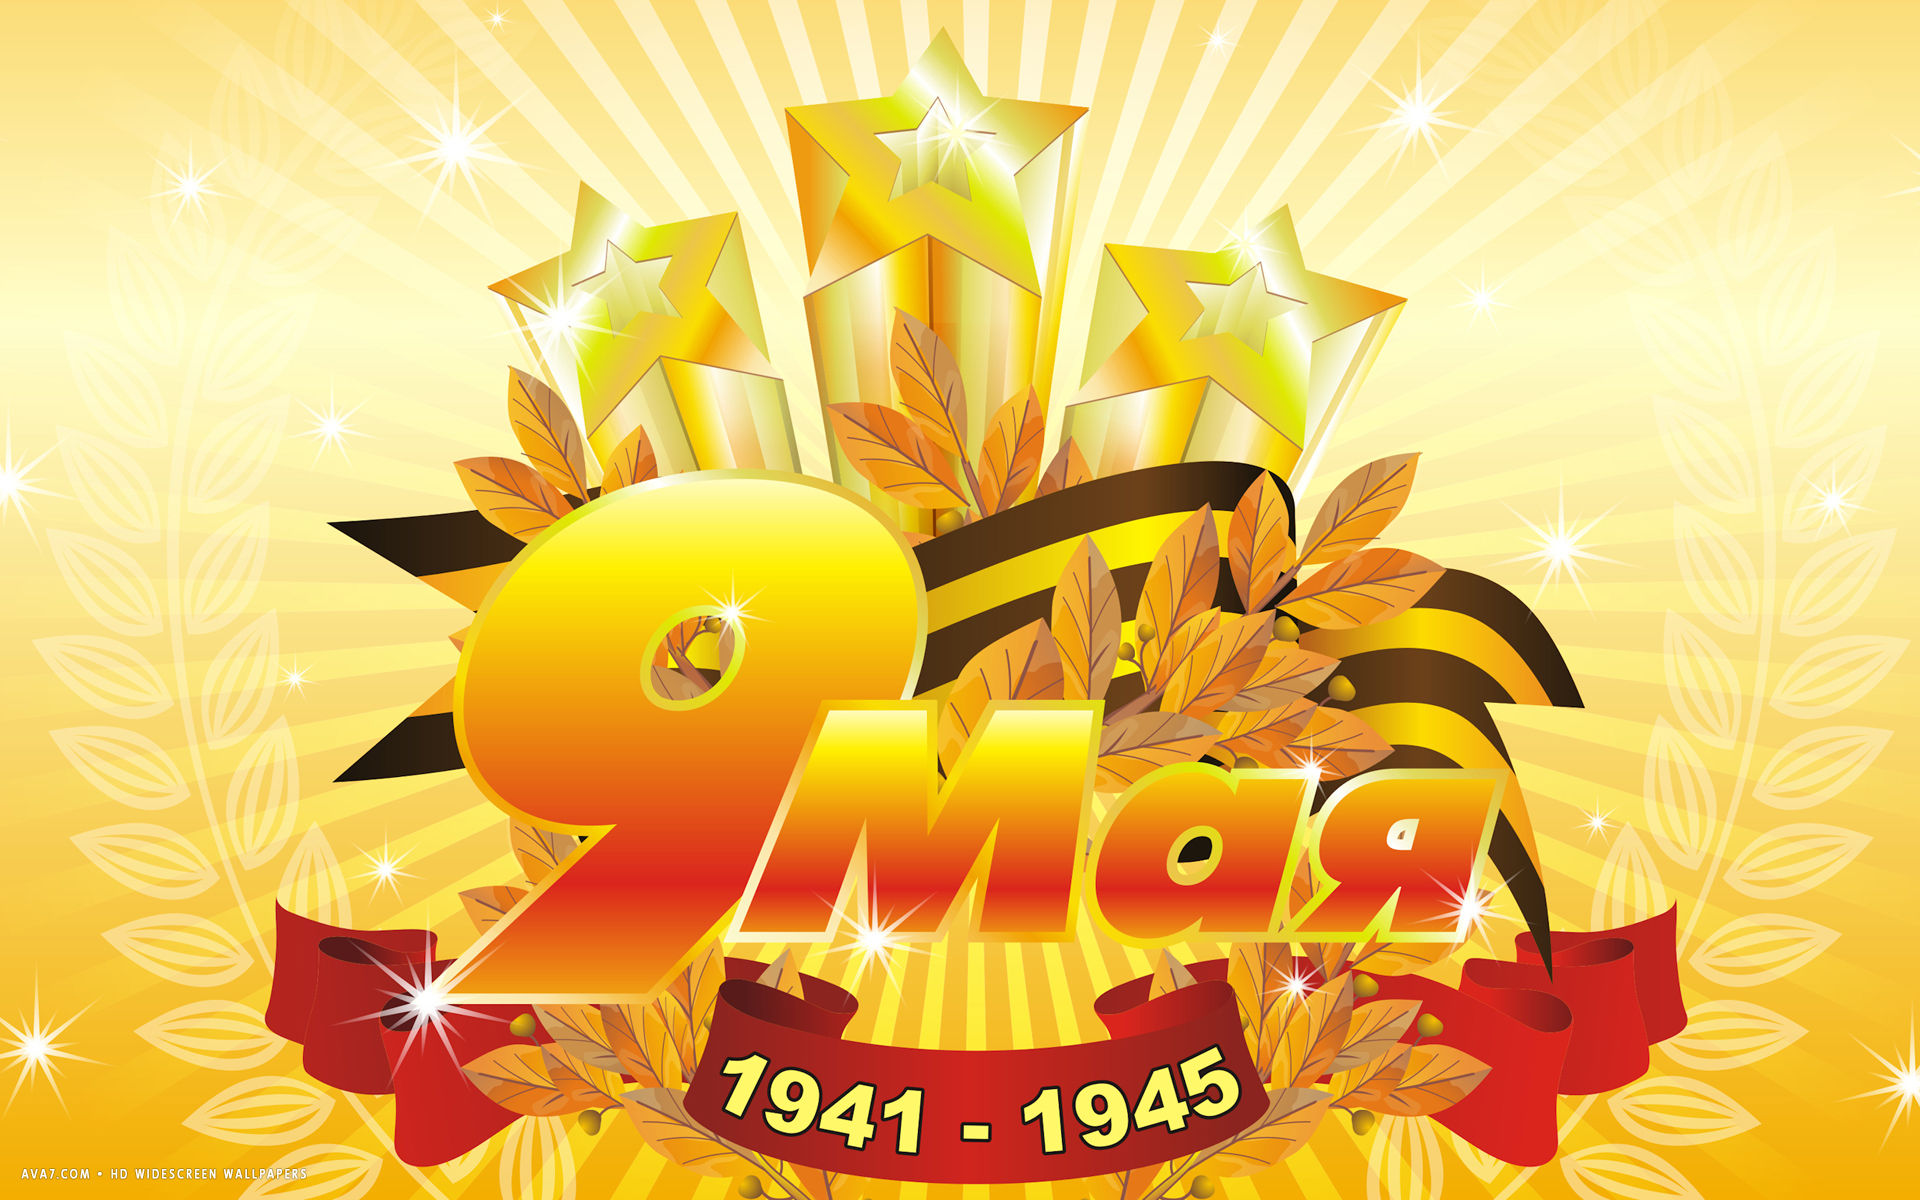 Wallpaper Victory Day Russia Holidays Hd Celebrations: Victory Day May 9 Vector Stars Gold 1941 1945 Russia